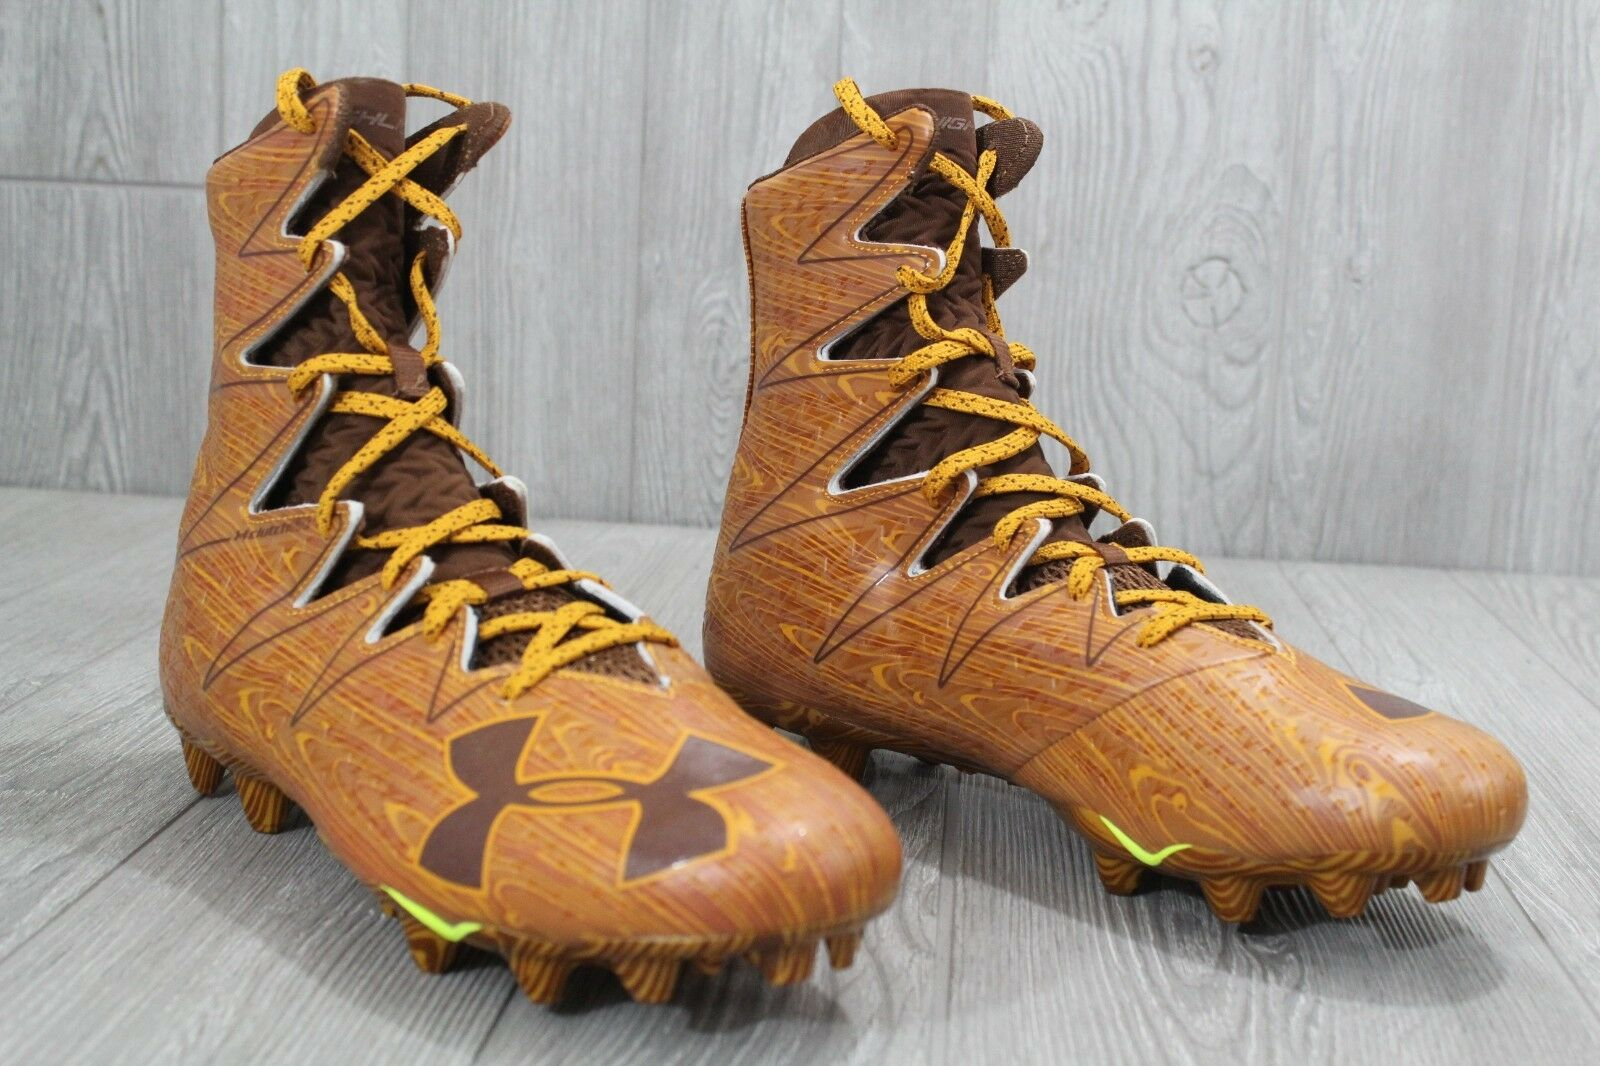 26 Highlight UNDER ARMOUR UA Highlight 26 Wood Clutch Fit Molded Football Cleats hommes 10.5-12 1bc755